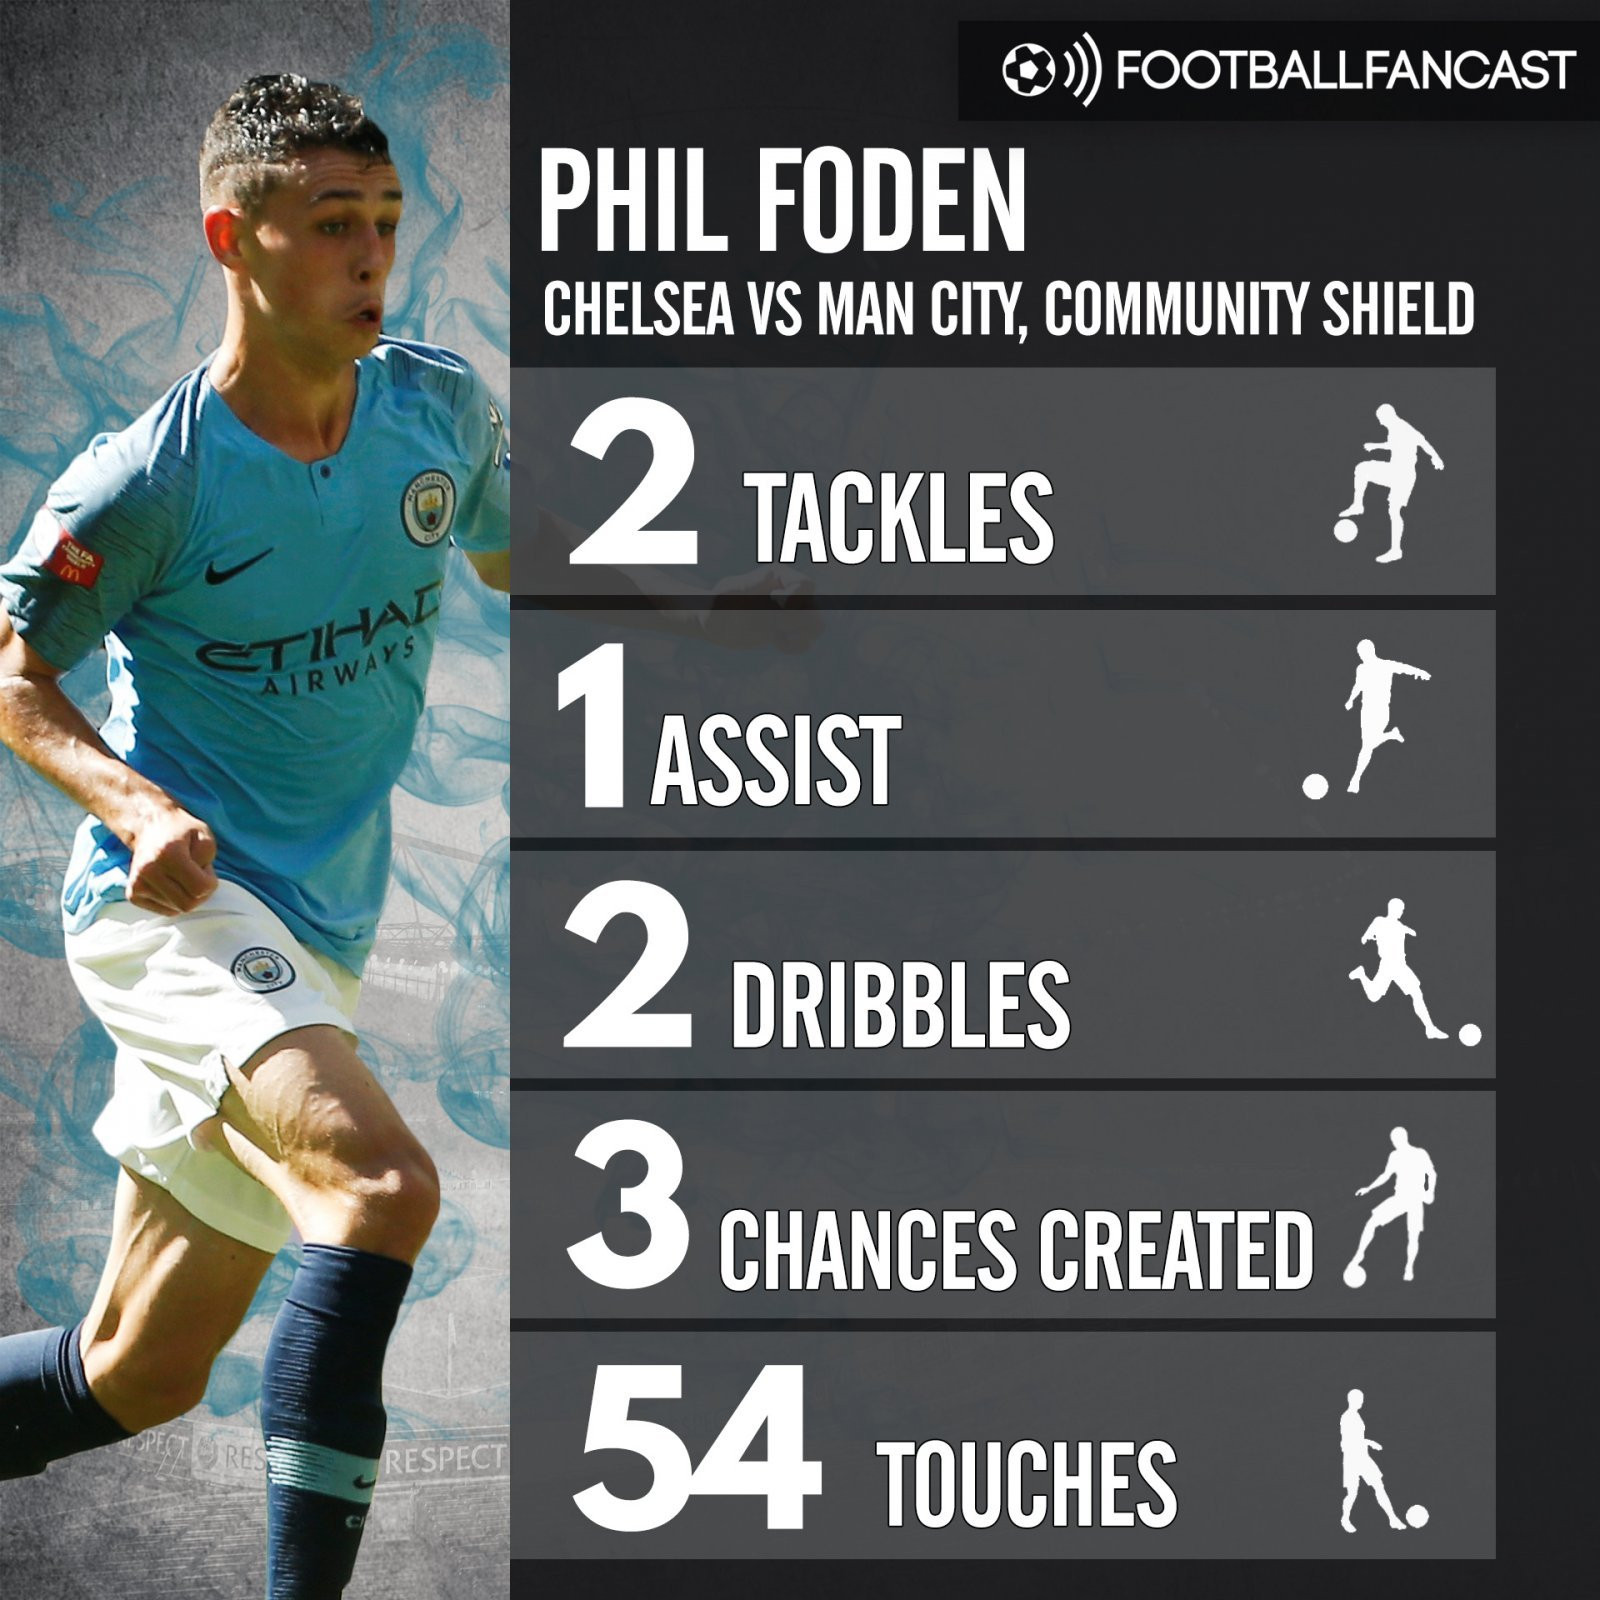 Phil Foden's stats from Manchester City's win over Chelsea